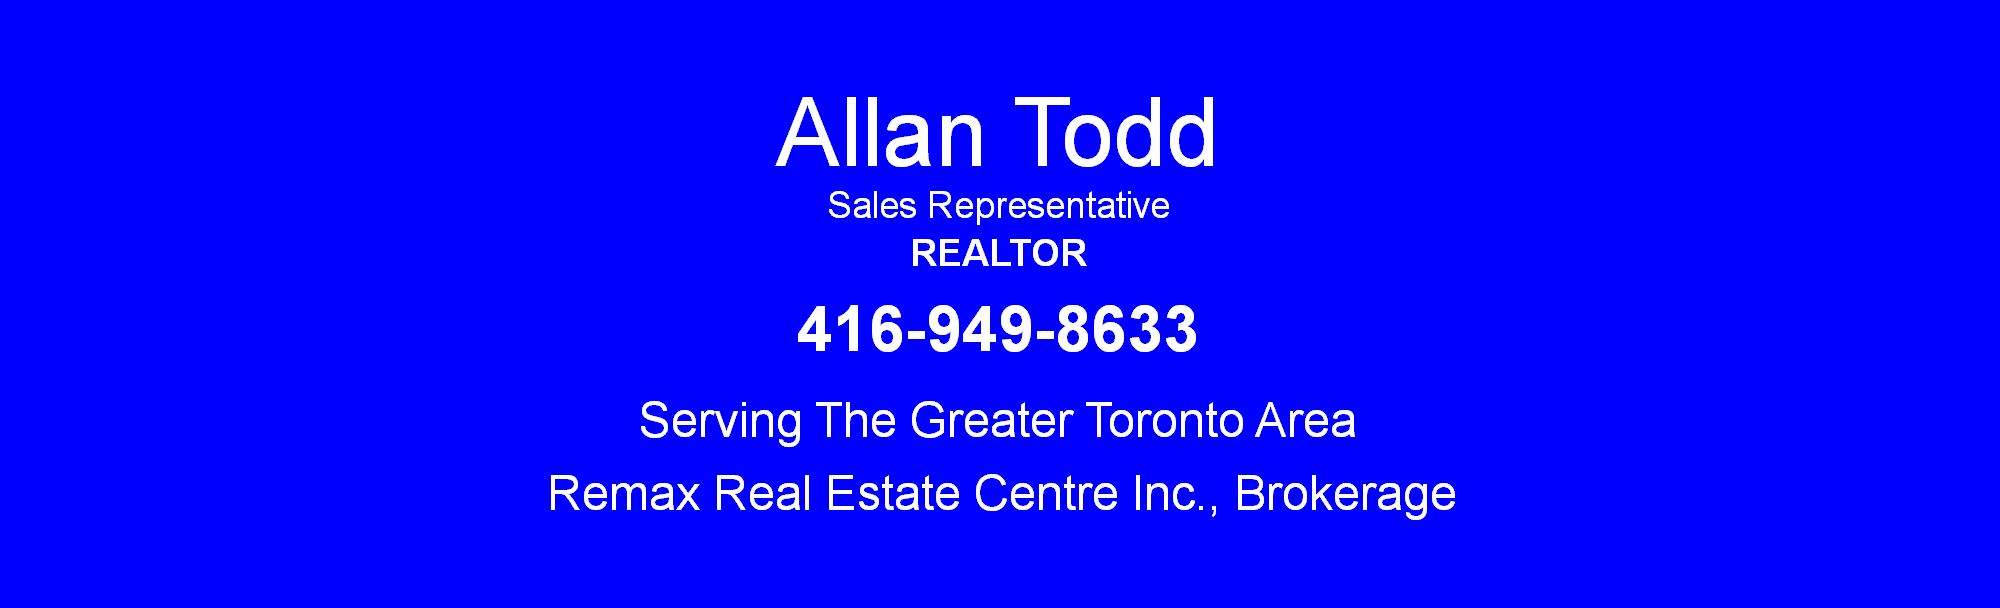 Looking for a realtor? call allan todd at 416-949-8633